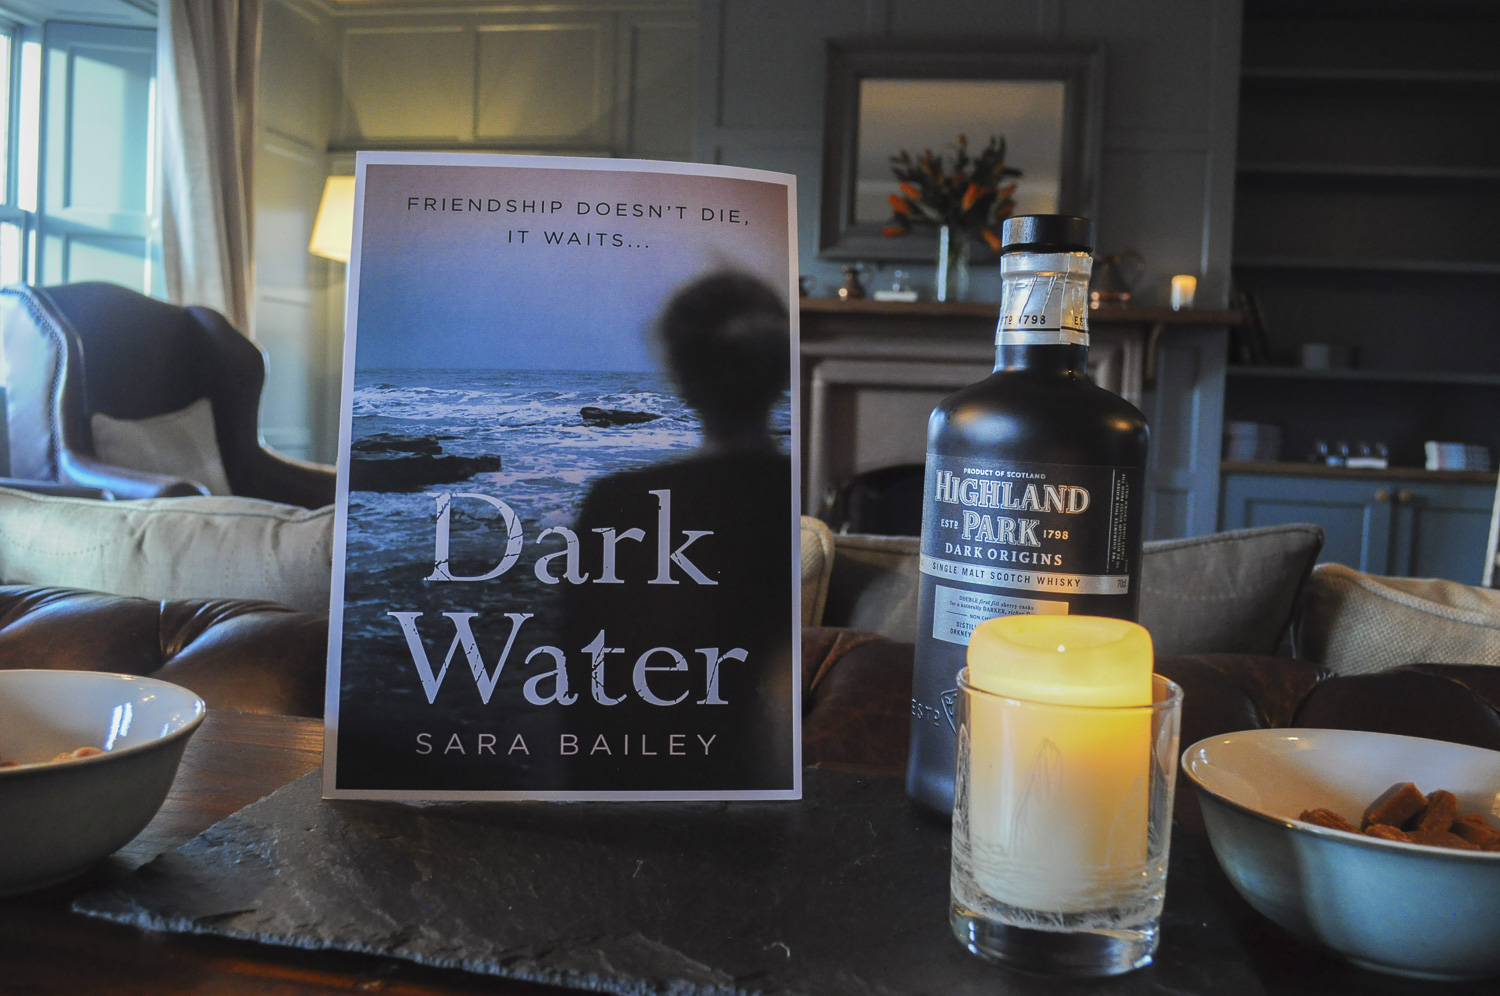 Dark Water, Dark Origins and Orkney fudge